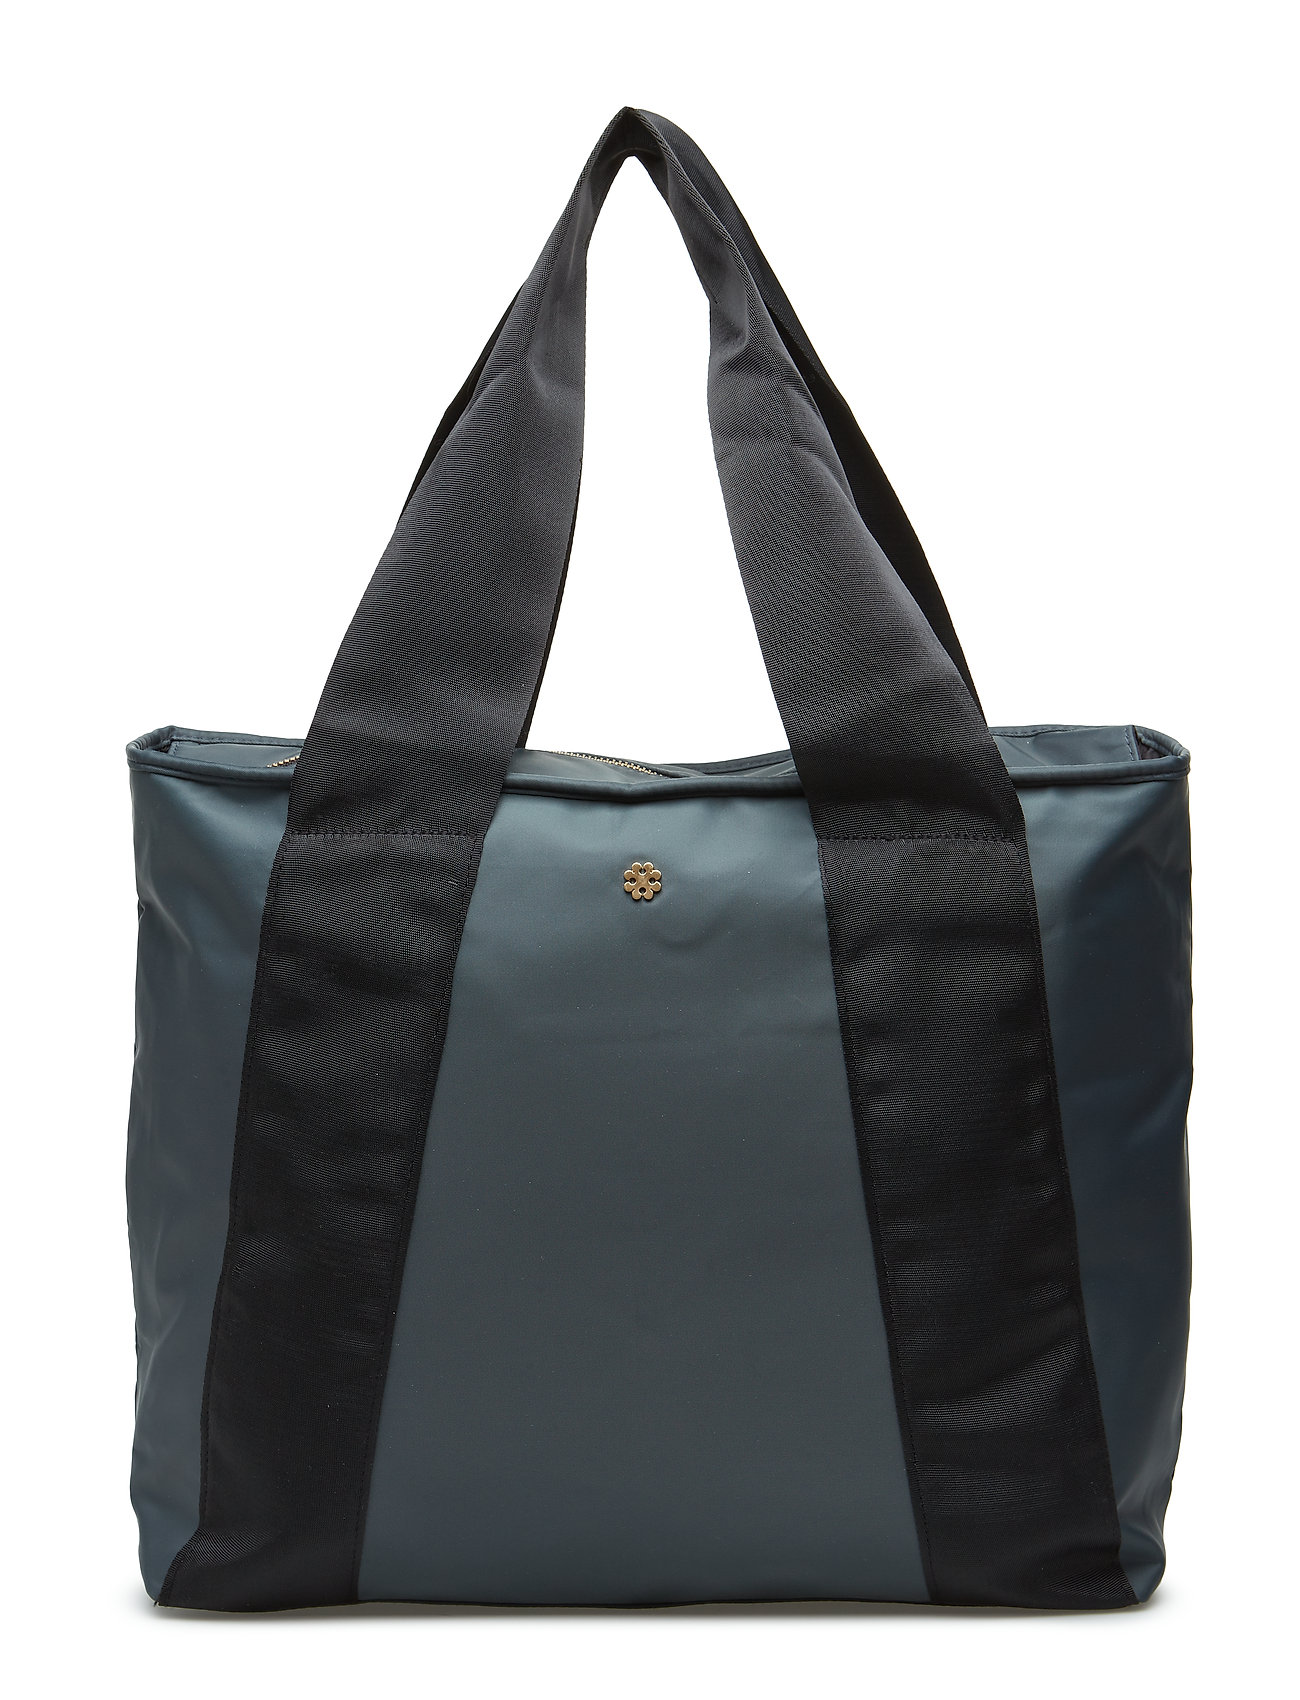 Image of Day Band Bag Shopper Taske Sort DAY ET (3102801435)